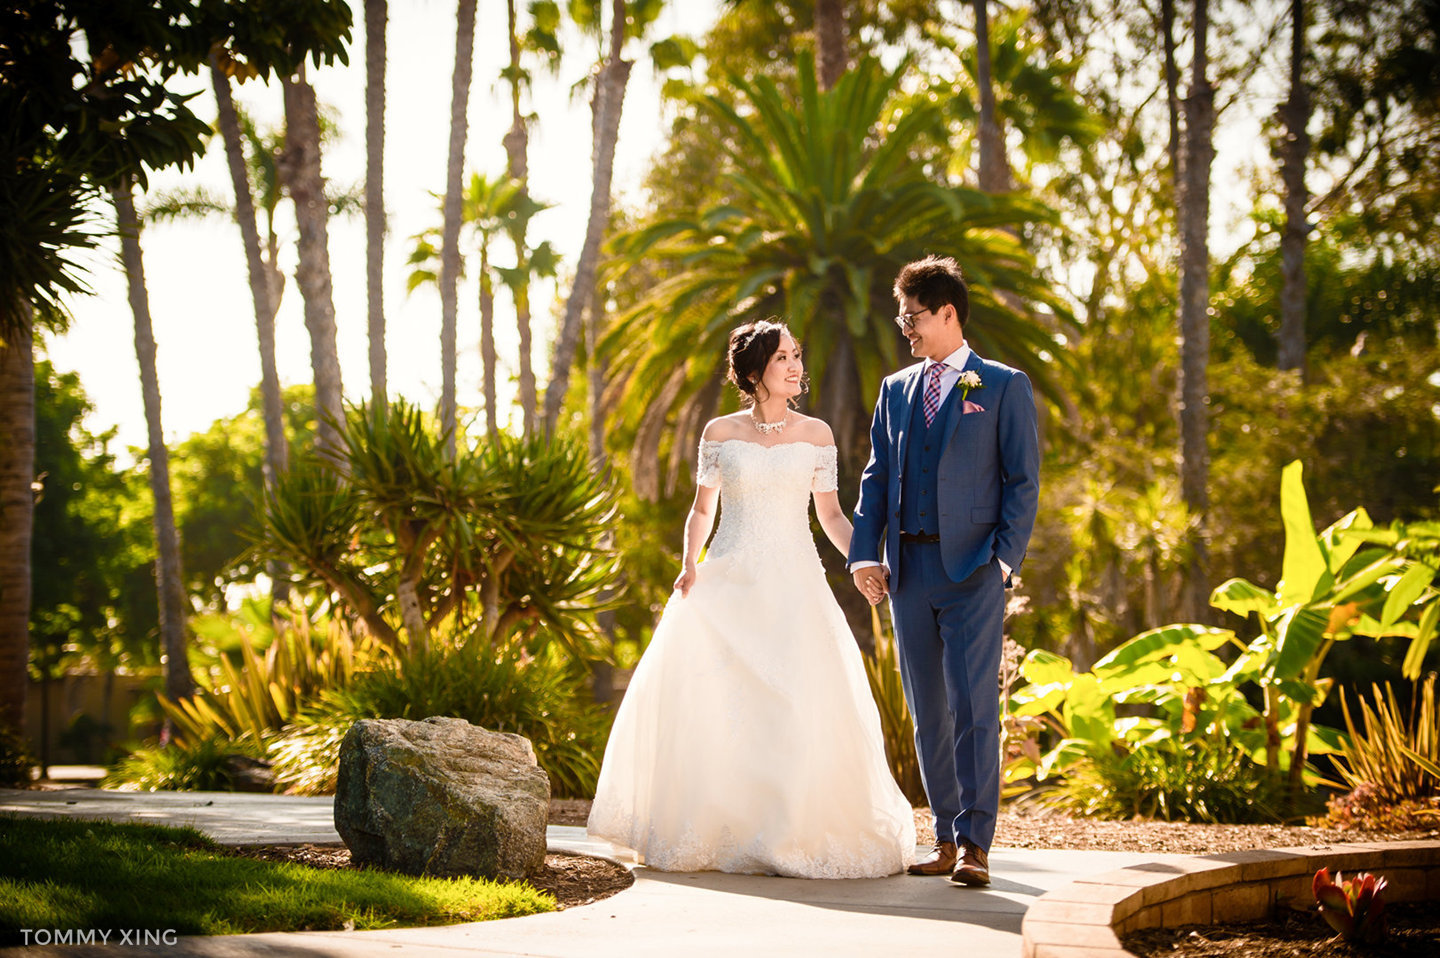 Paradise Point Resort Wedding Xiaolu & Bin San Diego 圣地亚哥婚礼摄影跟拍 Tommy Xing Photography 洛杉矶婚礼婚纱照摄影师 070.jpg